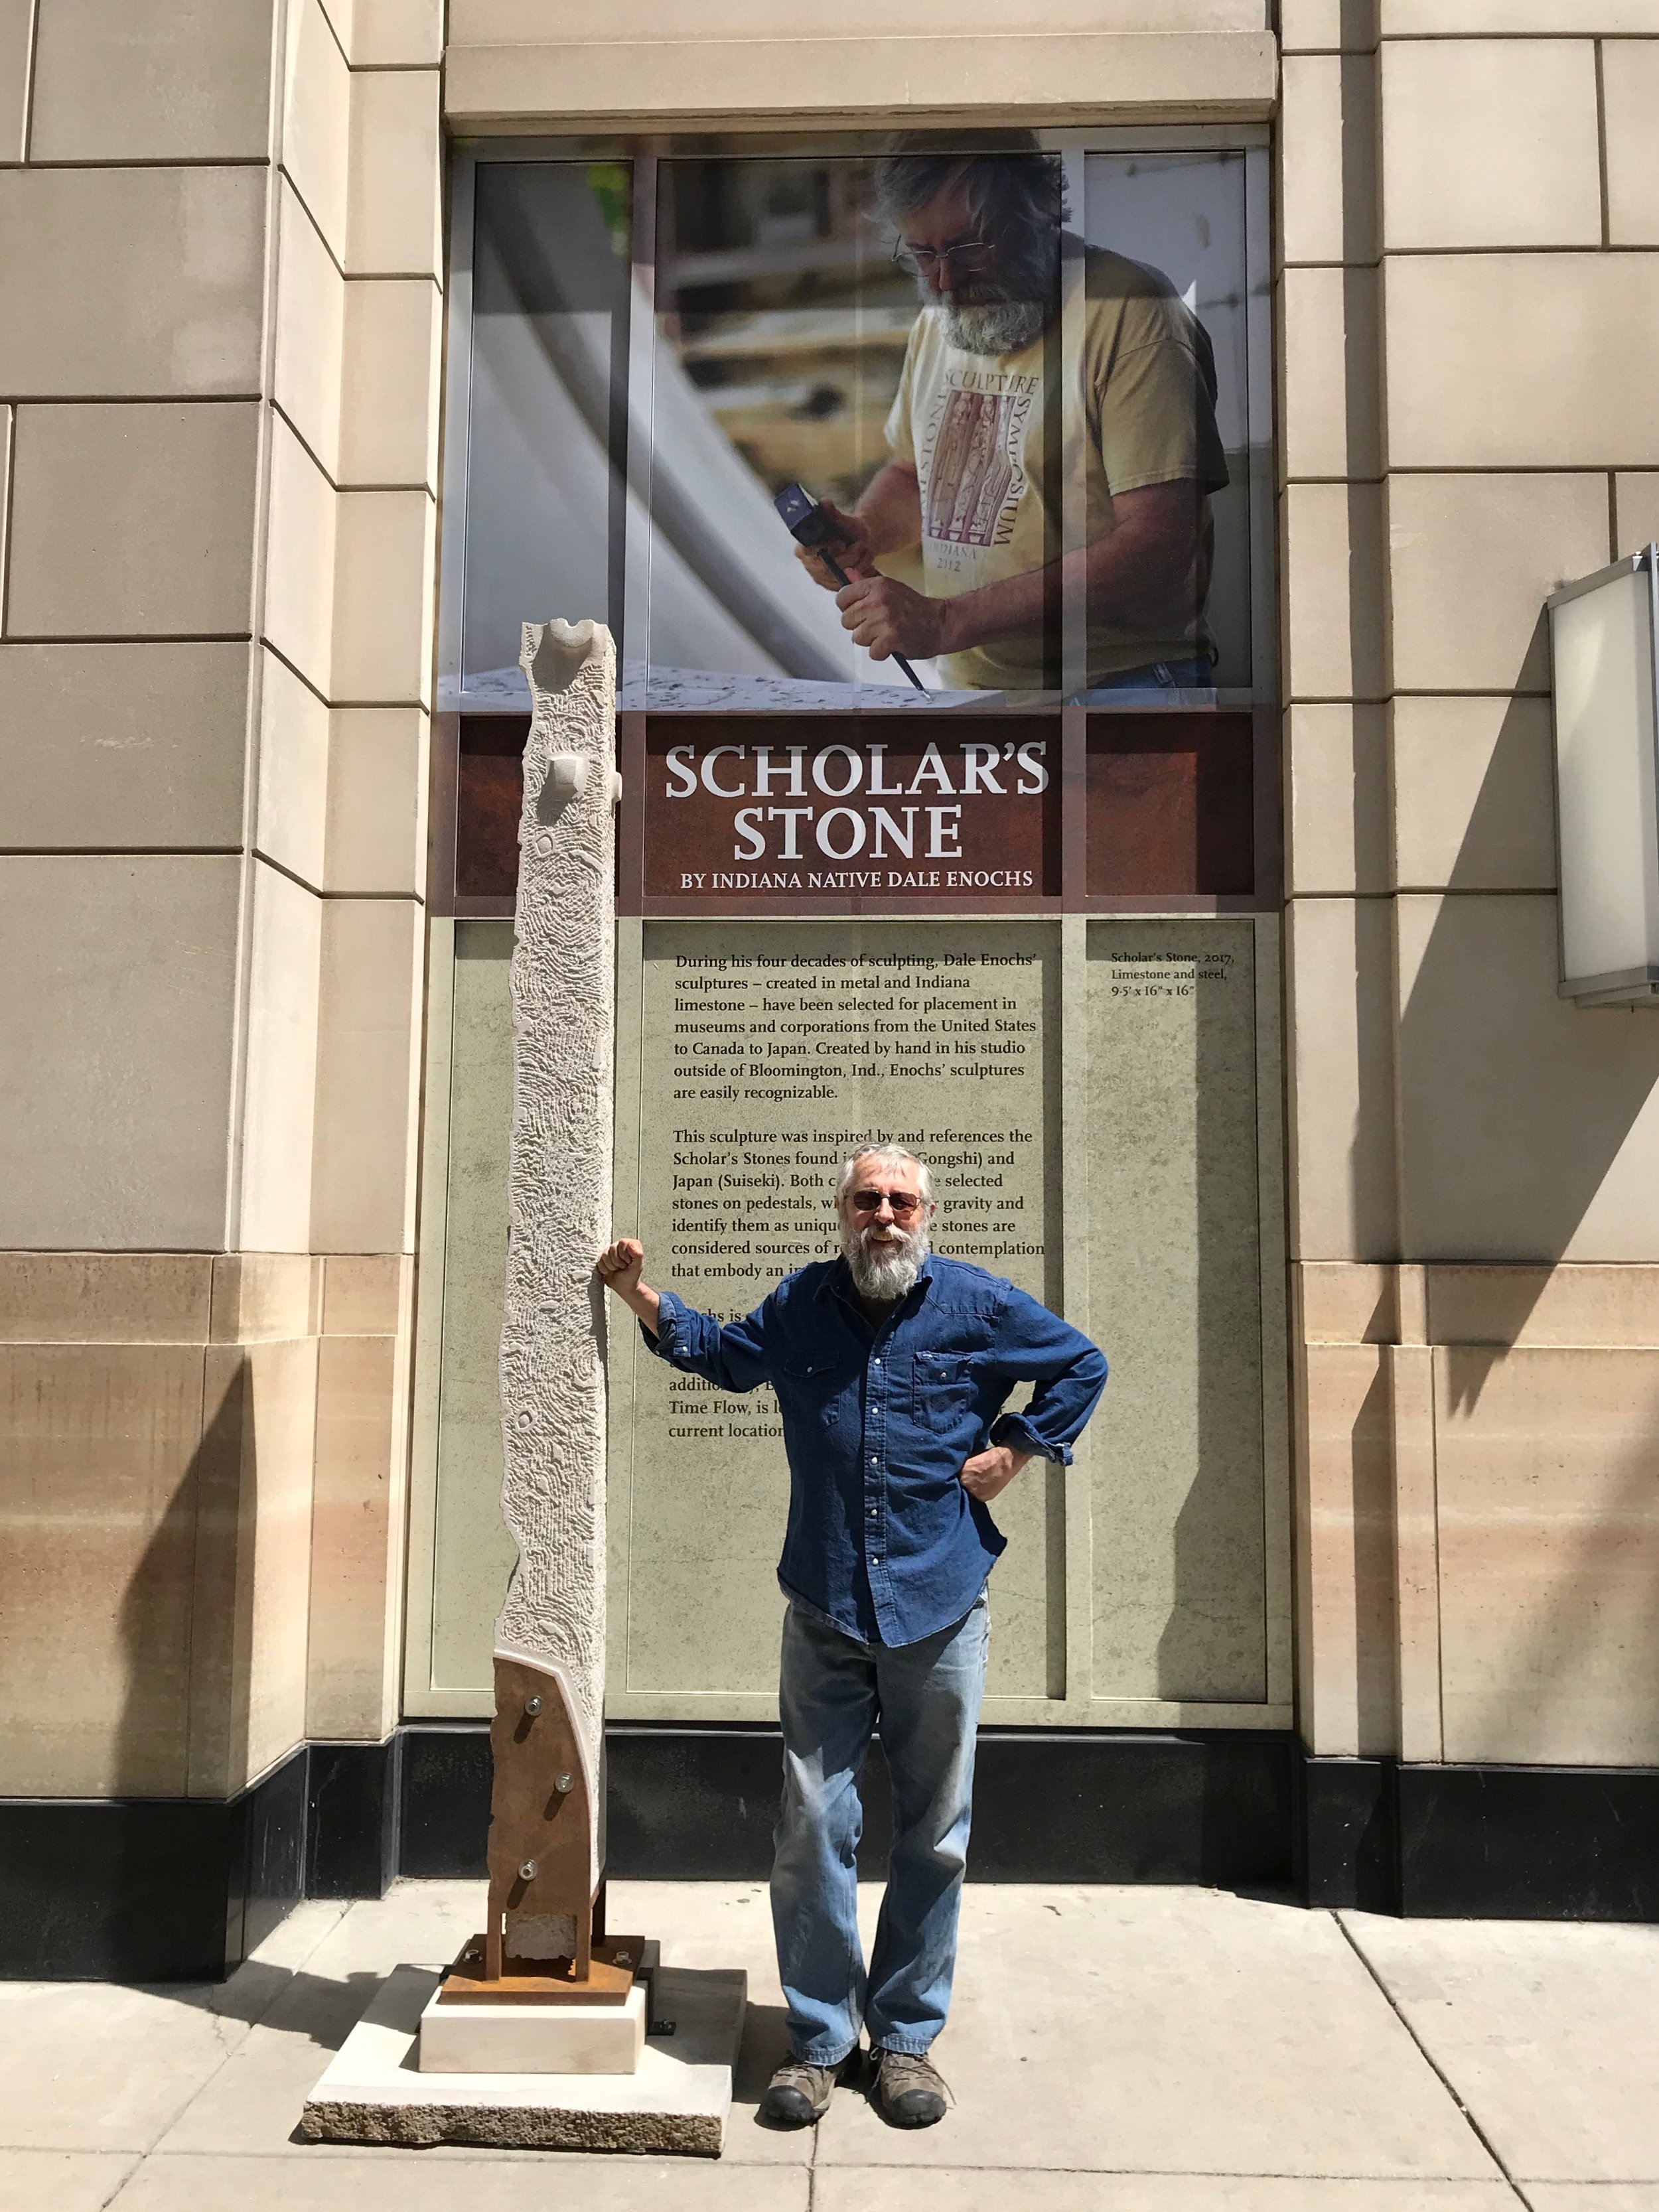 photo of scholar stone sculpture in front of conrad indianapolis with dale enochs